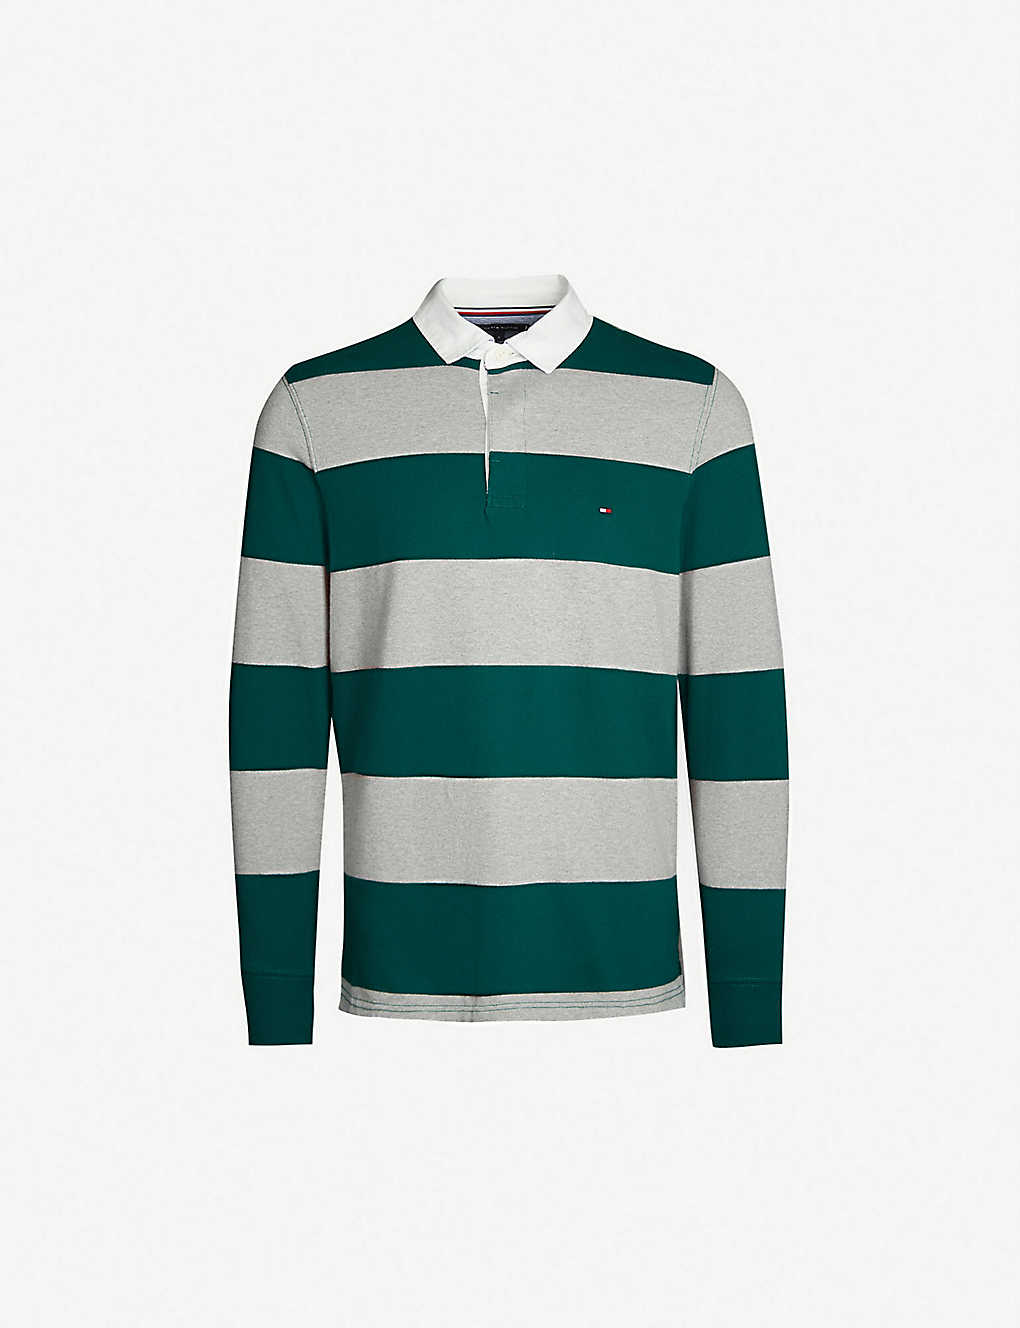 27d38351 TOMMY HILFIGER - Striped cotton-jersey rugby shirt | Selfridges.com